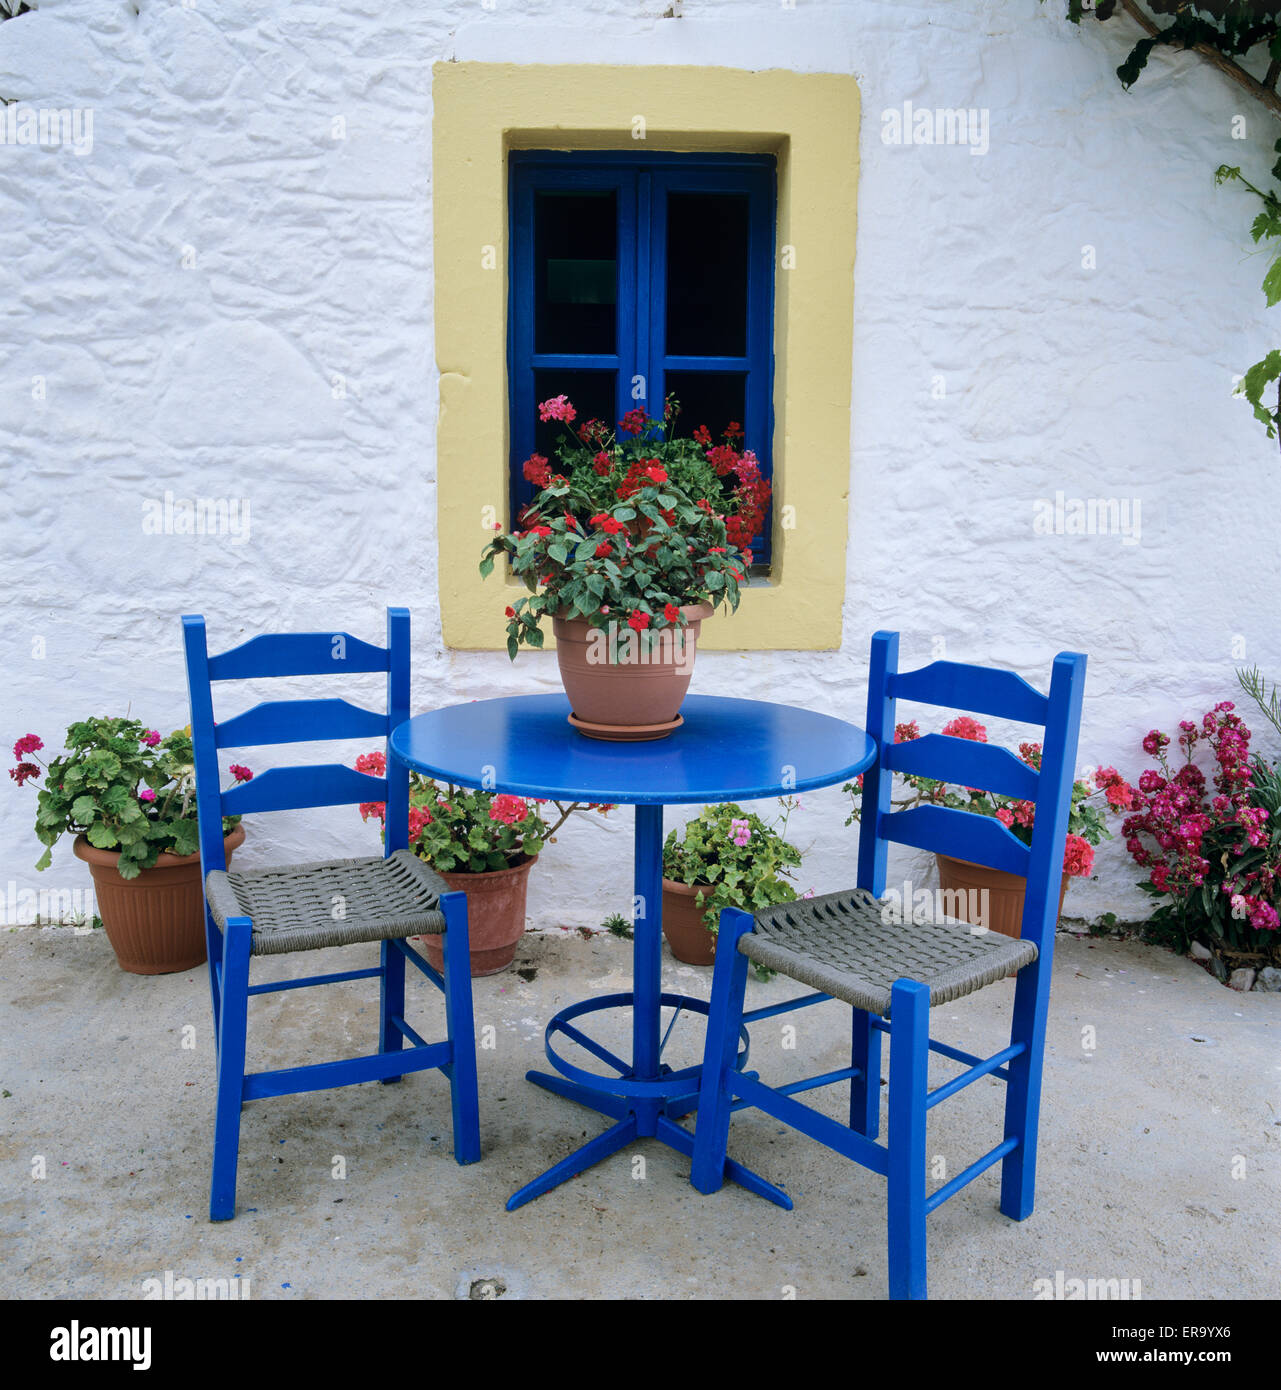 Greek style blue table and chairs, Kos, Dodecanese, Greek Islands, Greece, Europe - Stock Image